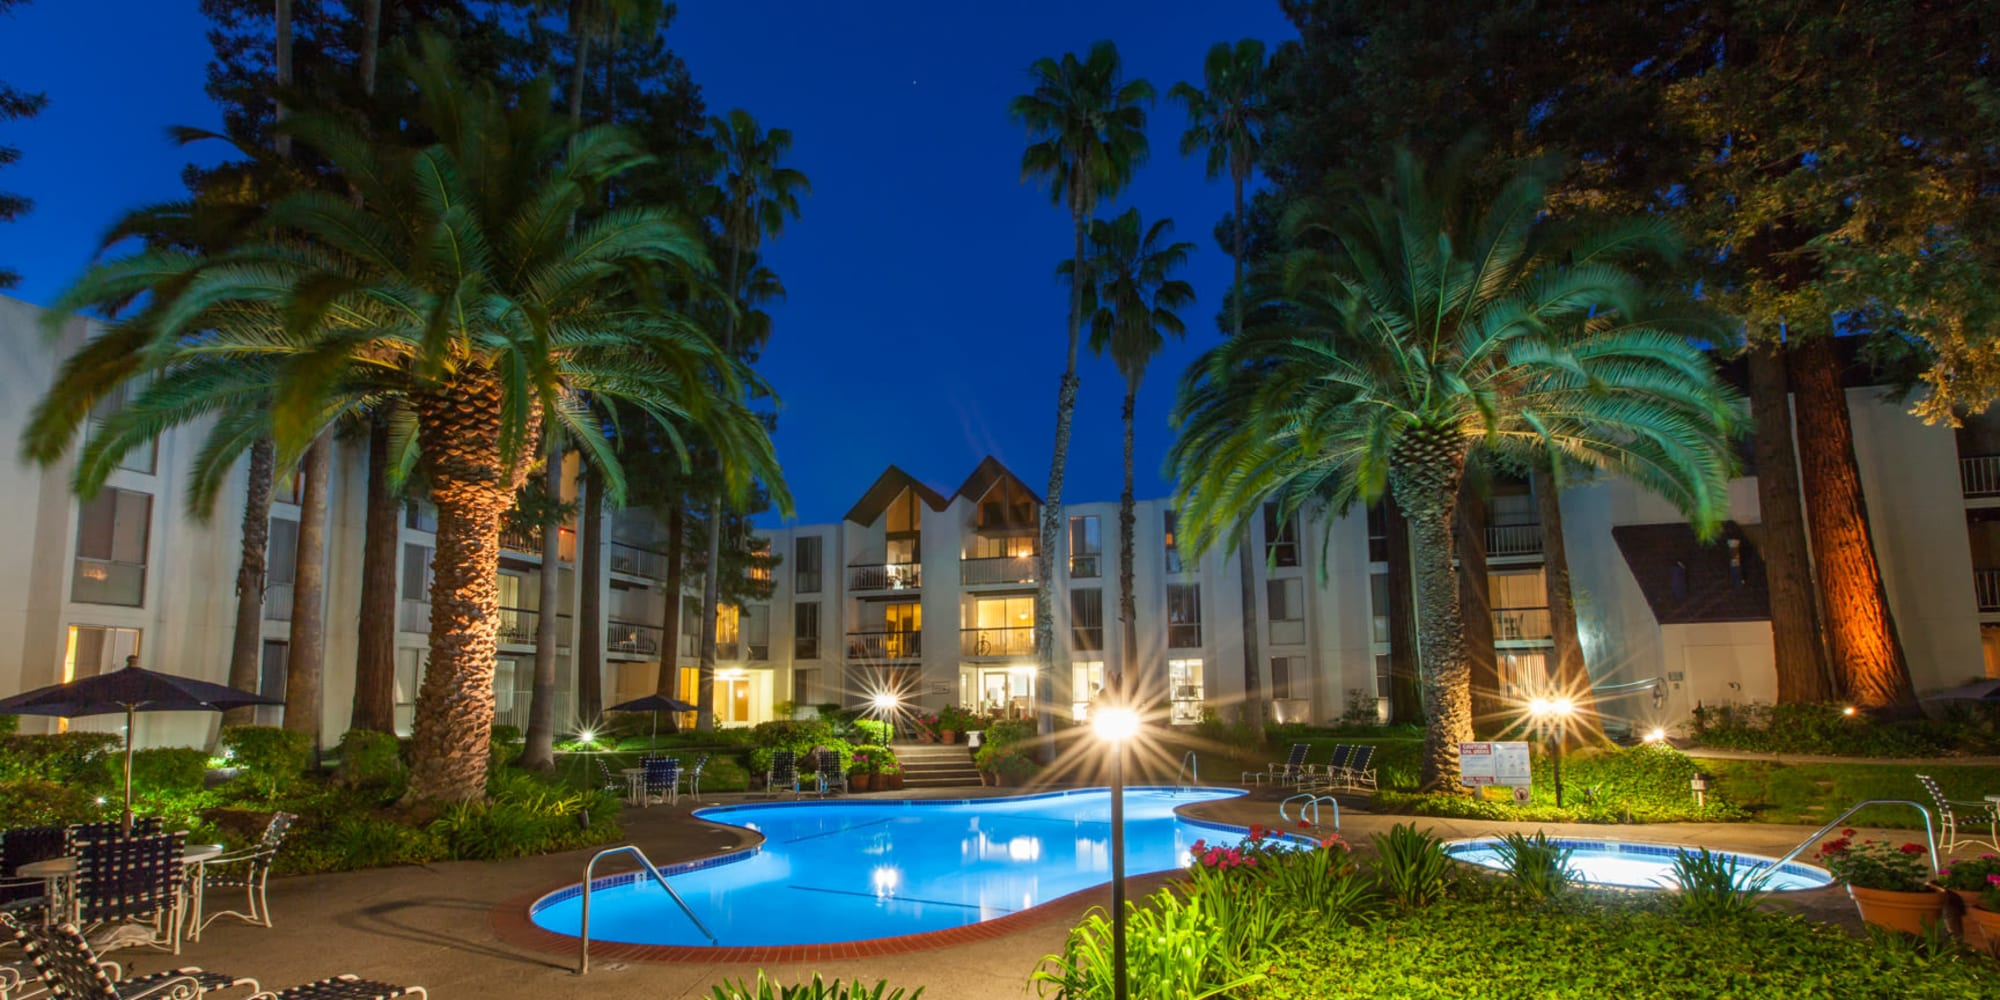 Castlewood Apartments in Walnut Creek, California